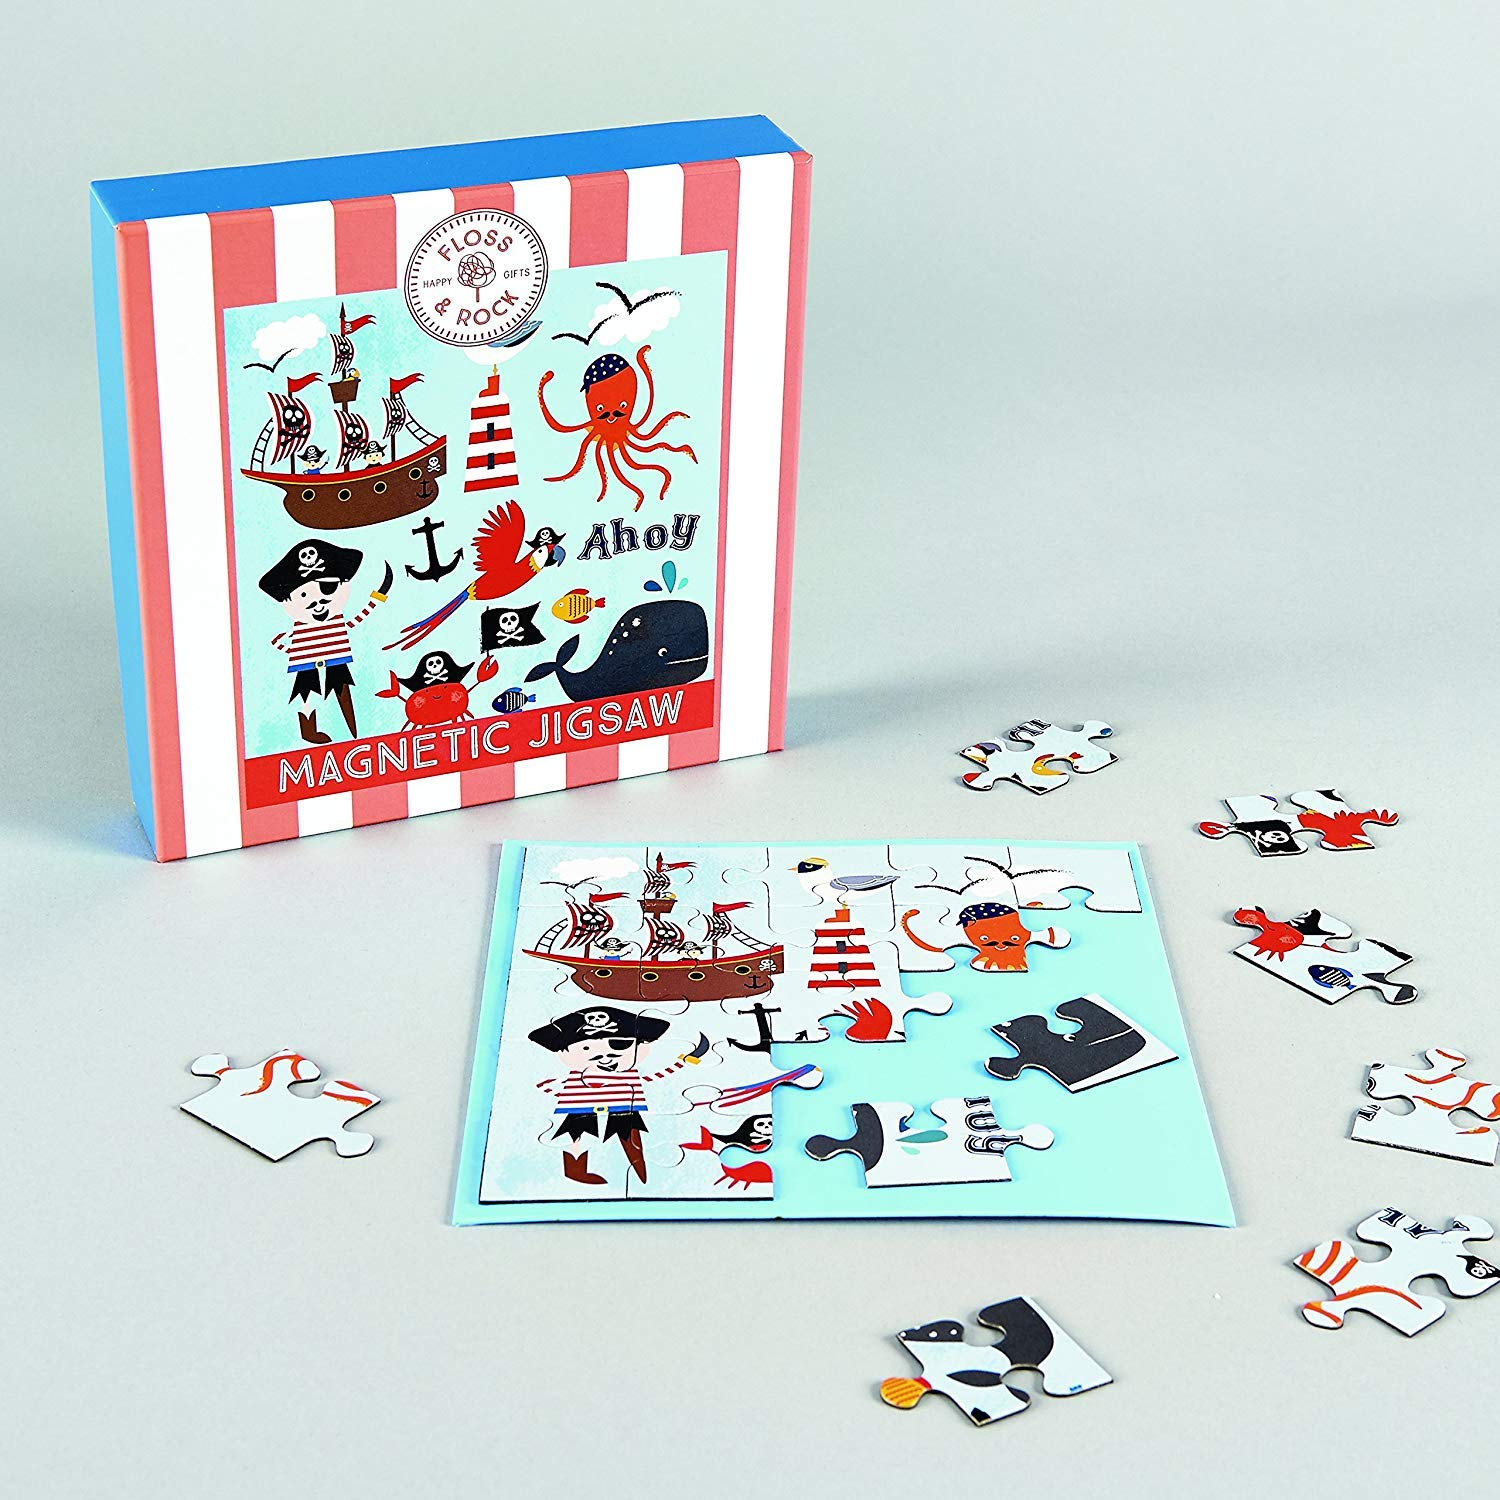 Floss & Rock Pirate Magnetic Jigsaw 25 Pieces